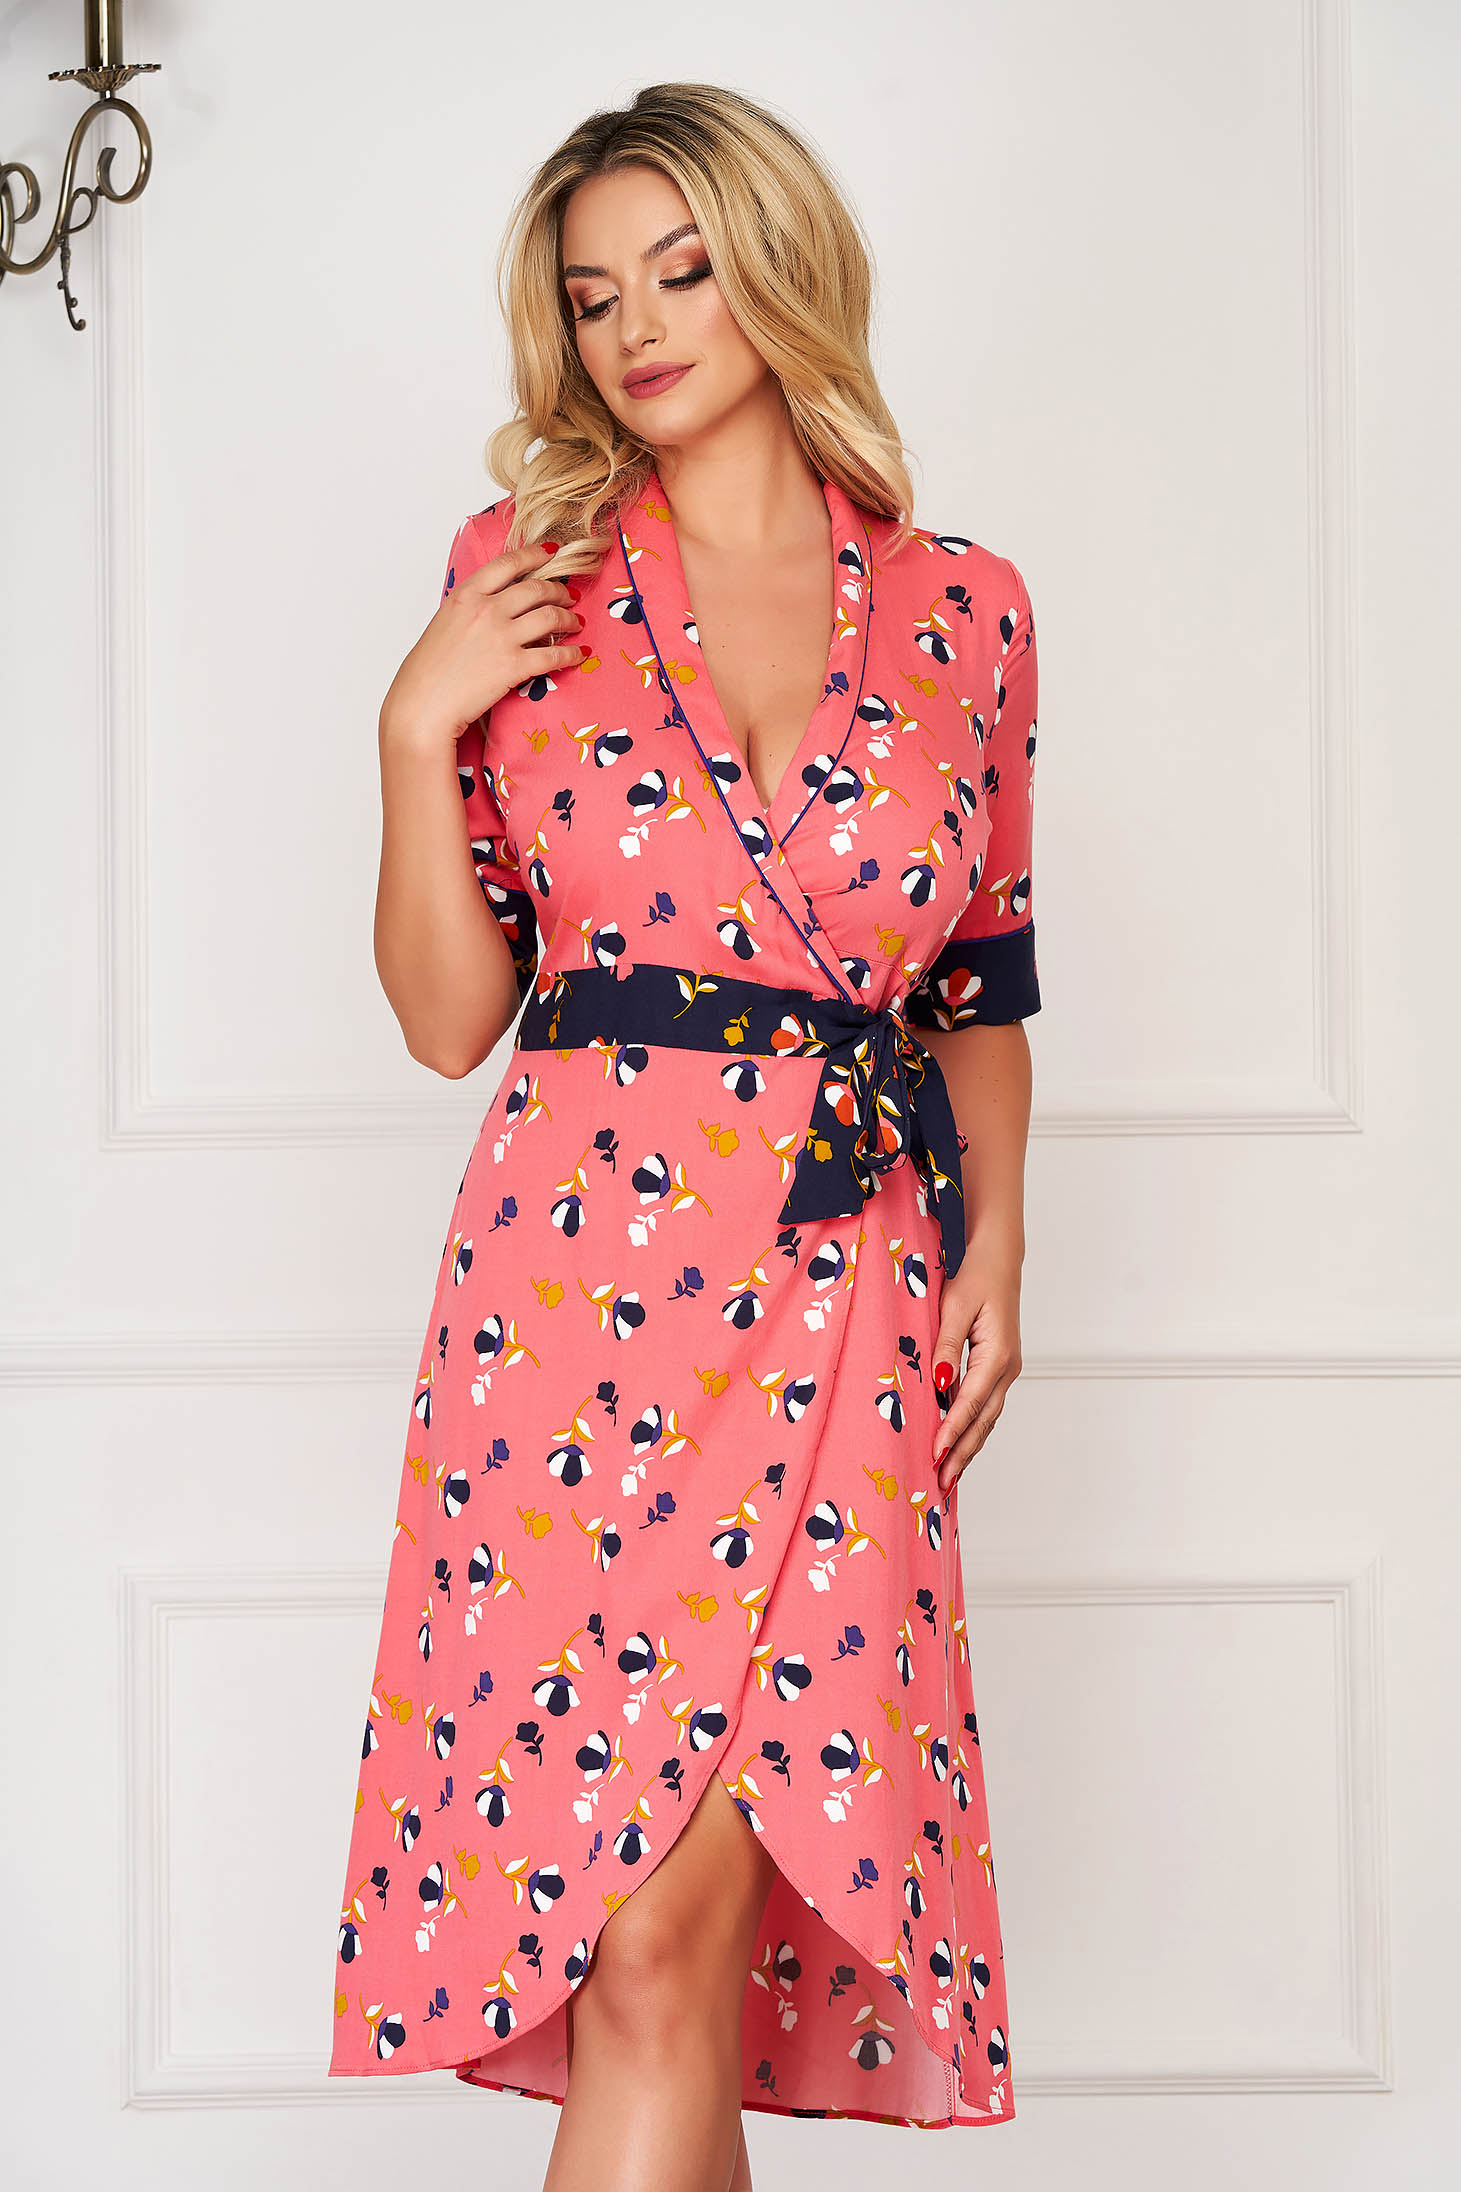 Dress pink midi daily wrap over skirt cloche with v-neckline with floral print